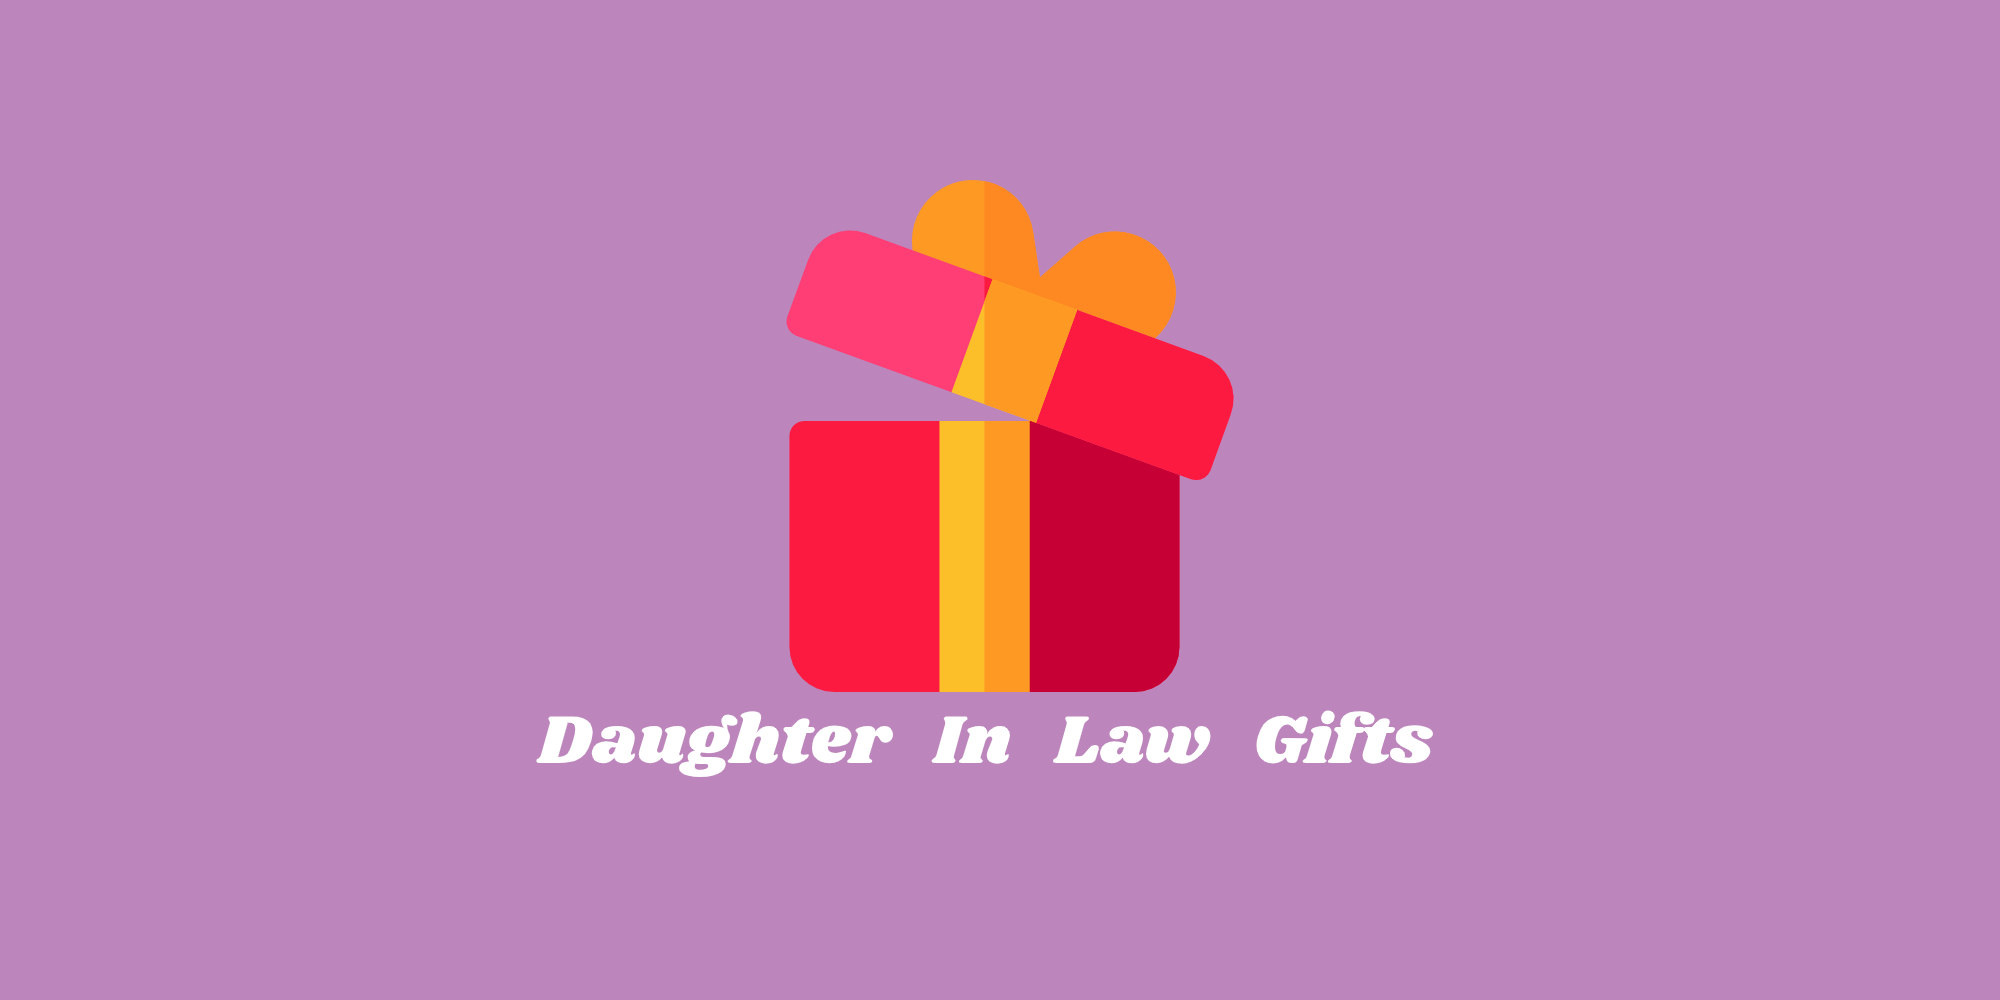 Daughter In Law Gifts